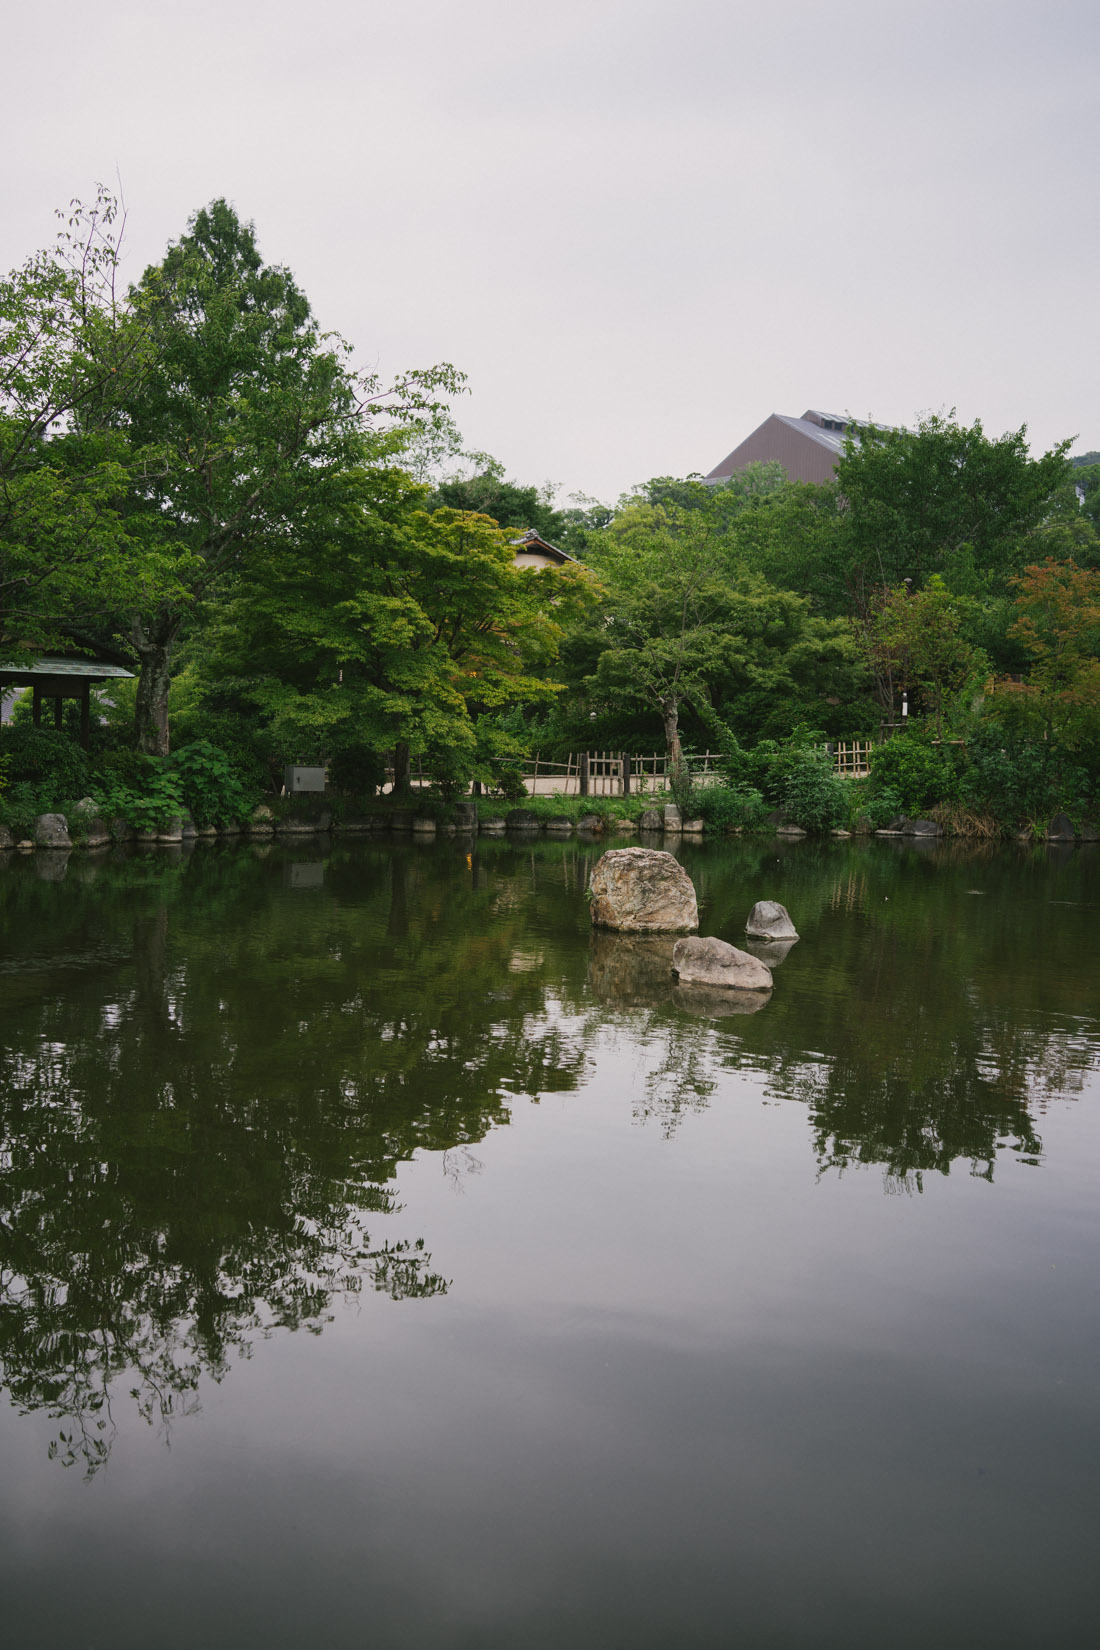 Pond in Maruyama park with many fish, a couple of ducks and a pair of turtles.